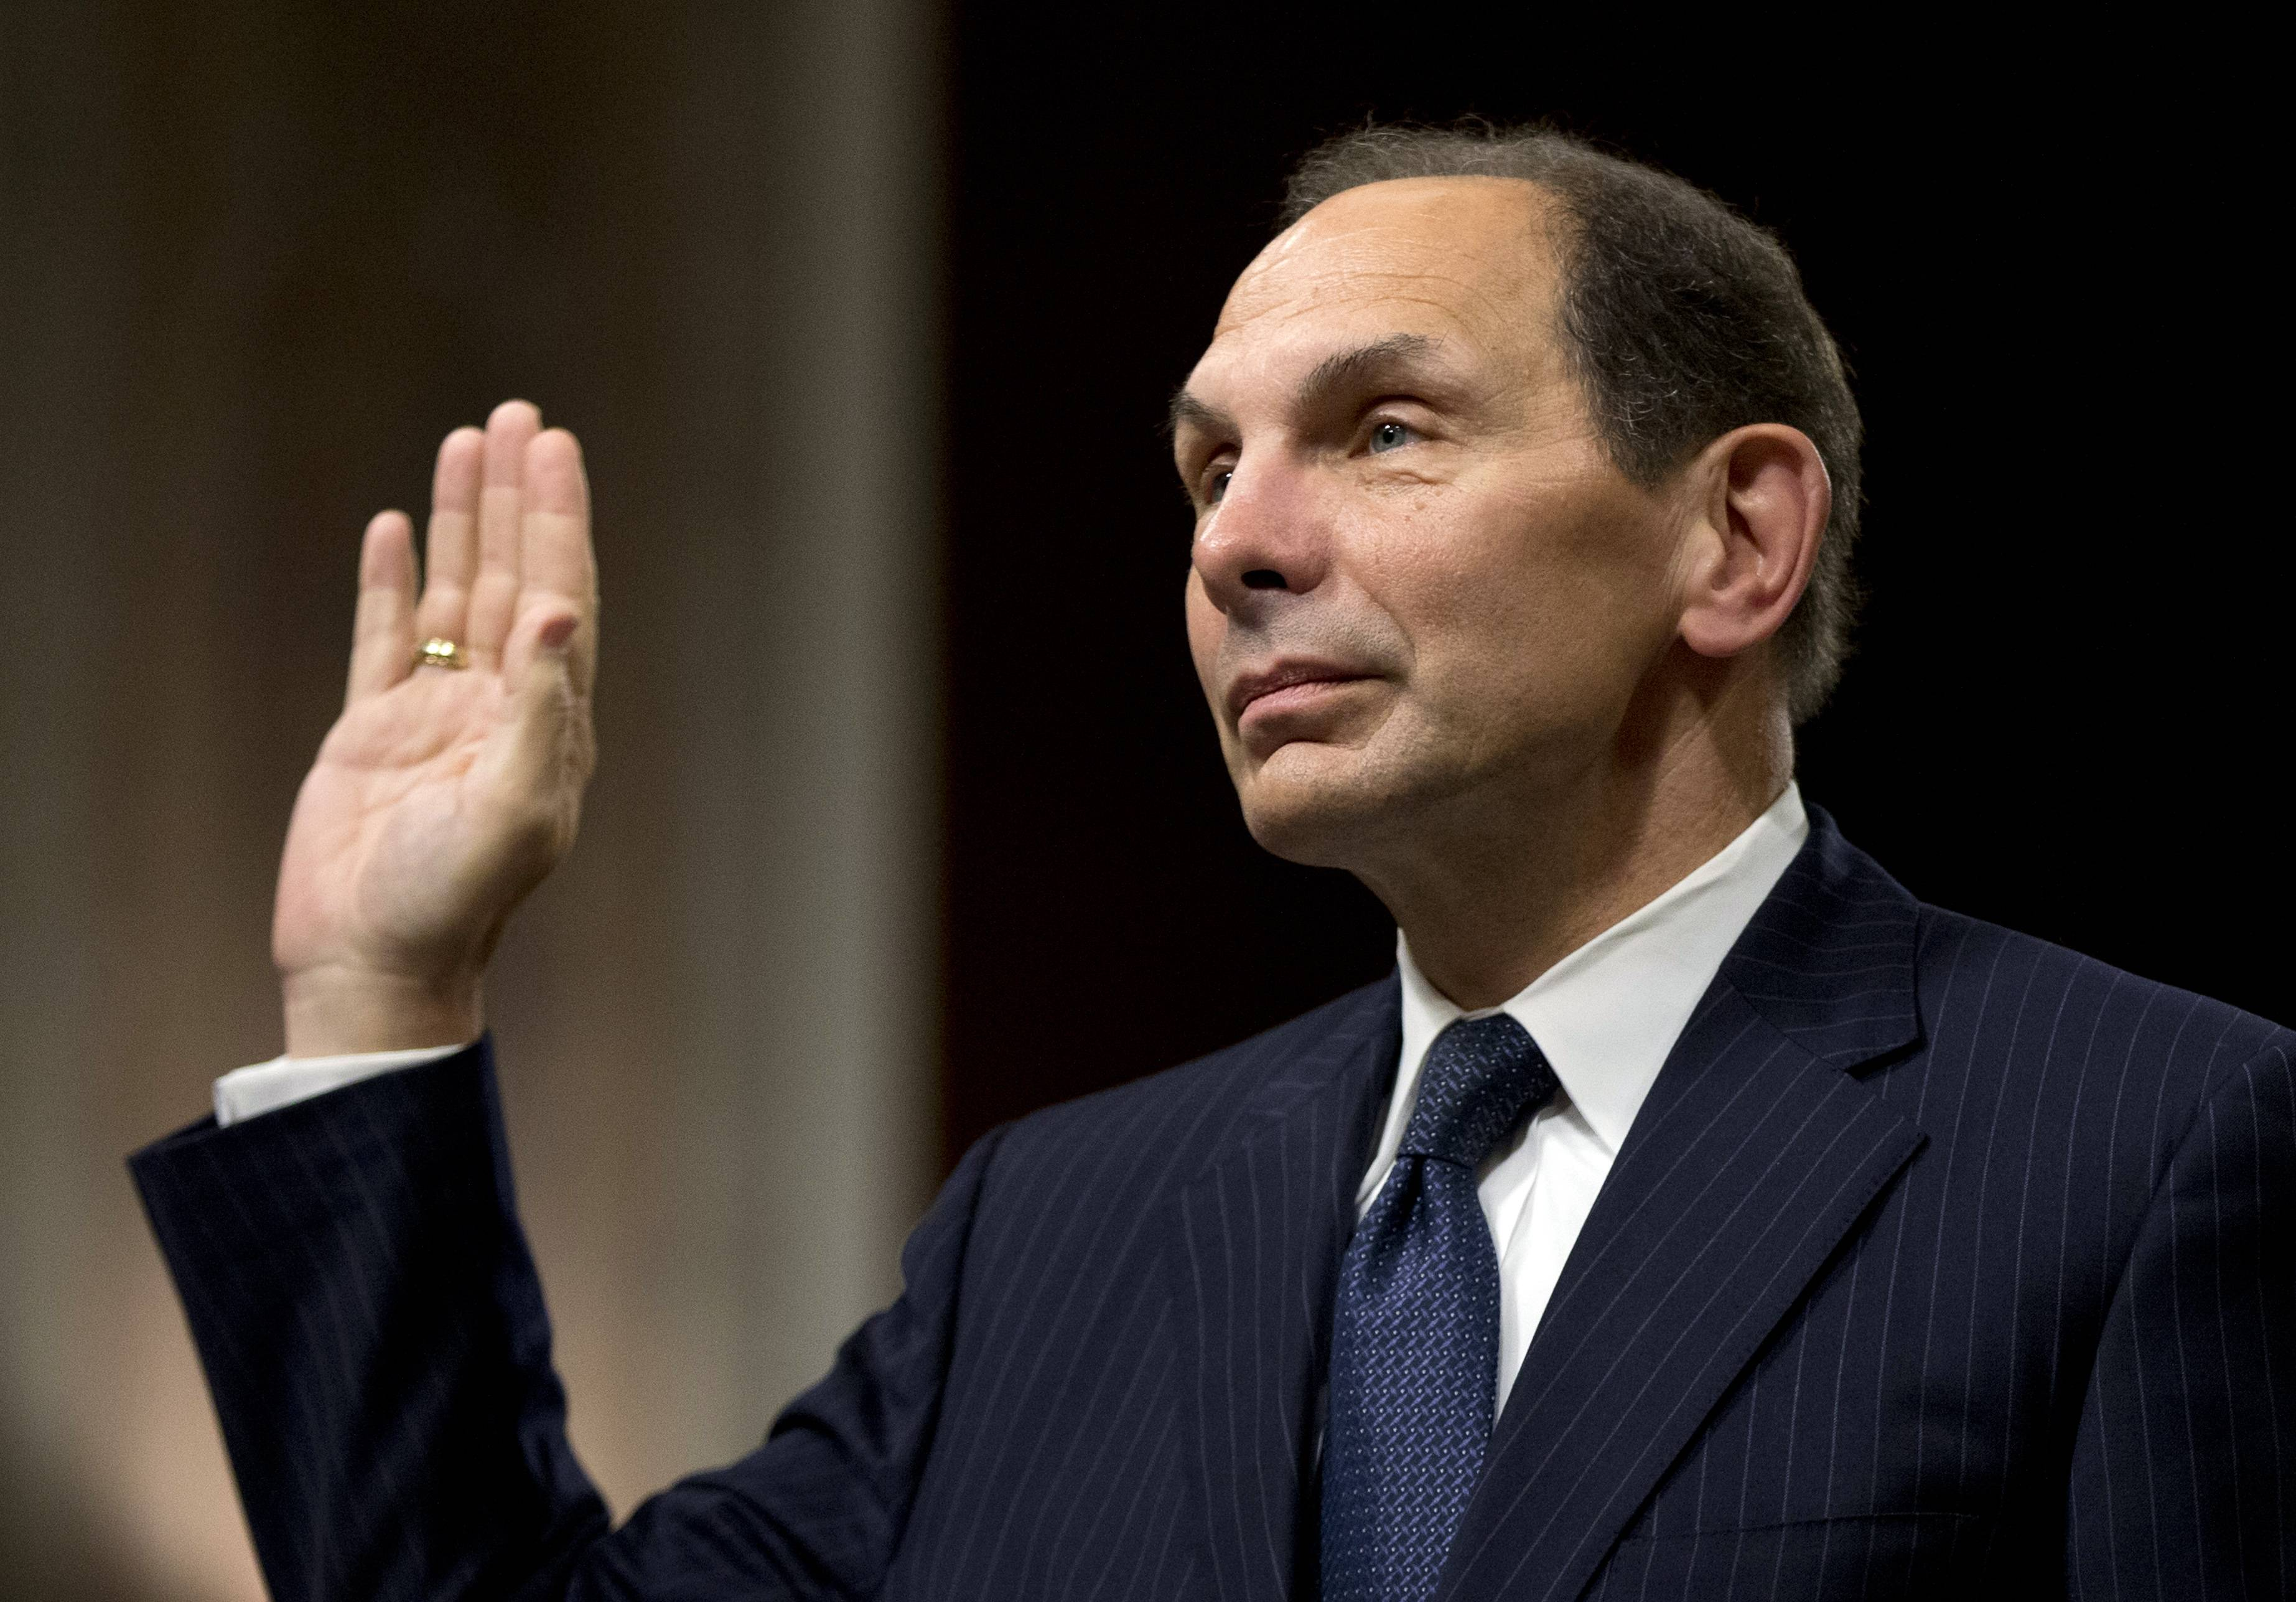 Former Procter & Gamble Chief Executive Officer Bob McDonald said Tuesday he would use the skills he developed during three decades in the private sector to overhaul the troubled U.S. Department of Veterans Affairs.